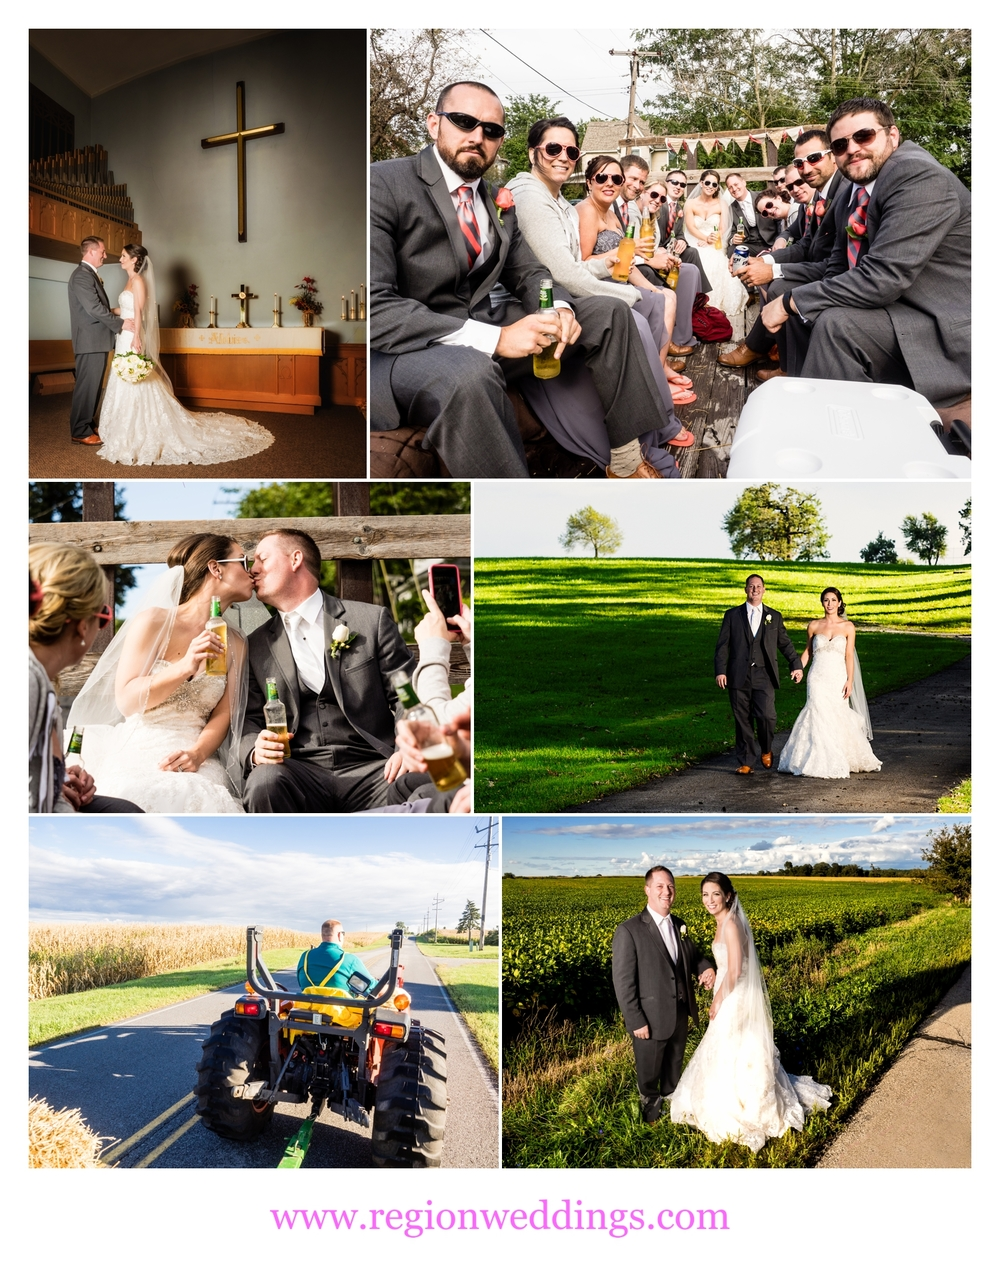 Wedding photos along the rural roads of Lowell, Indiana.